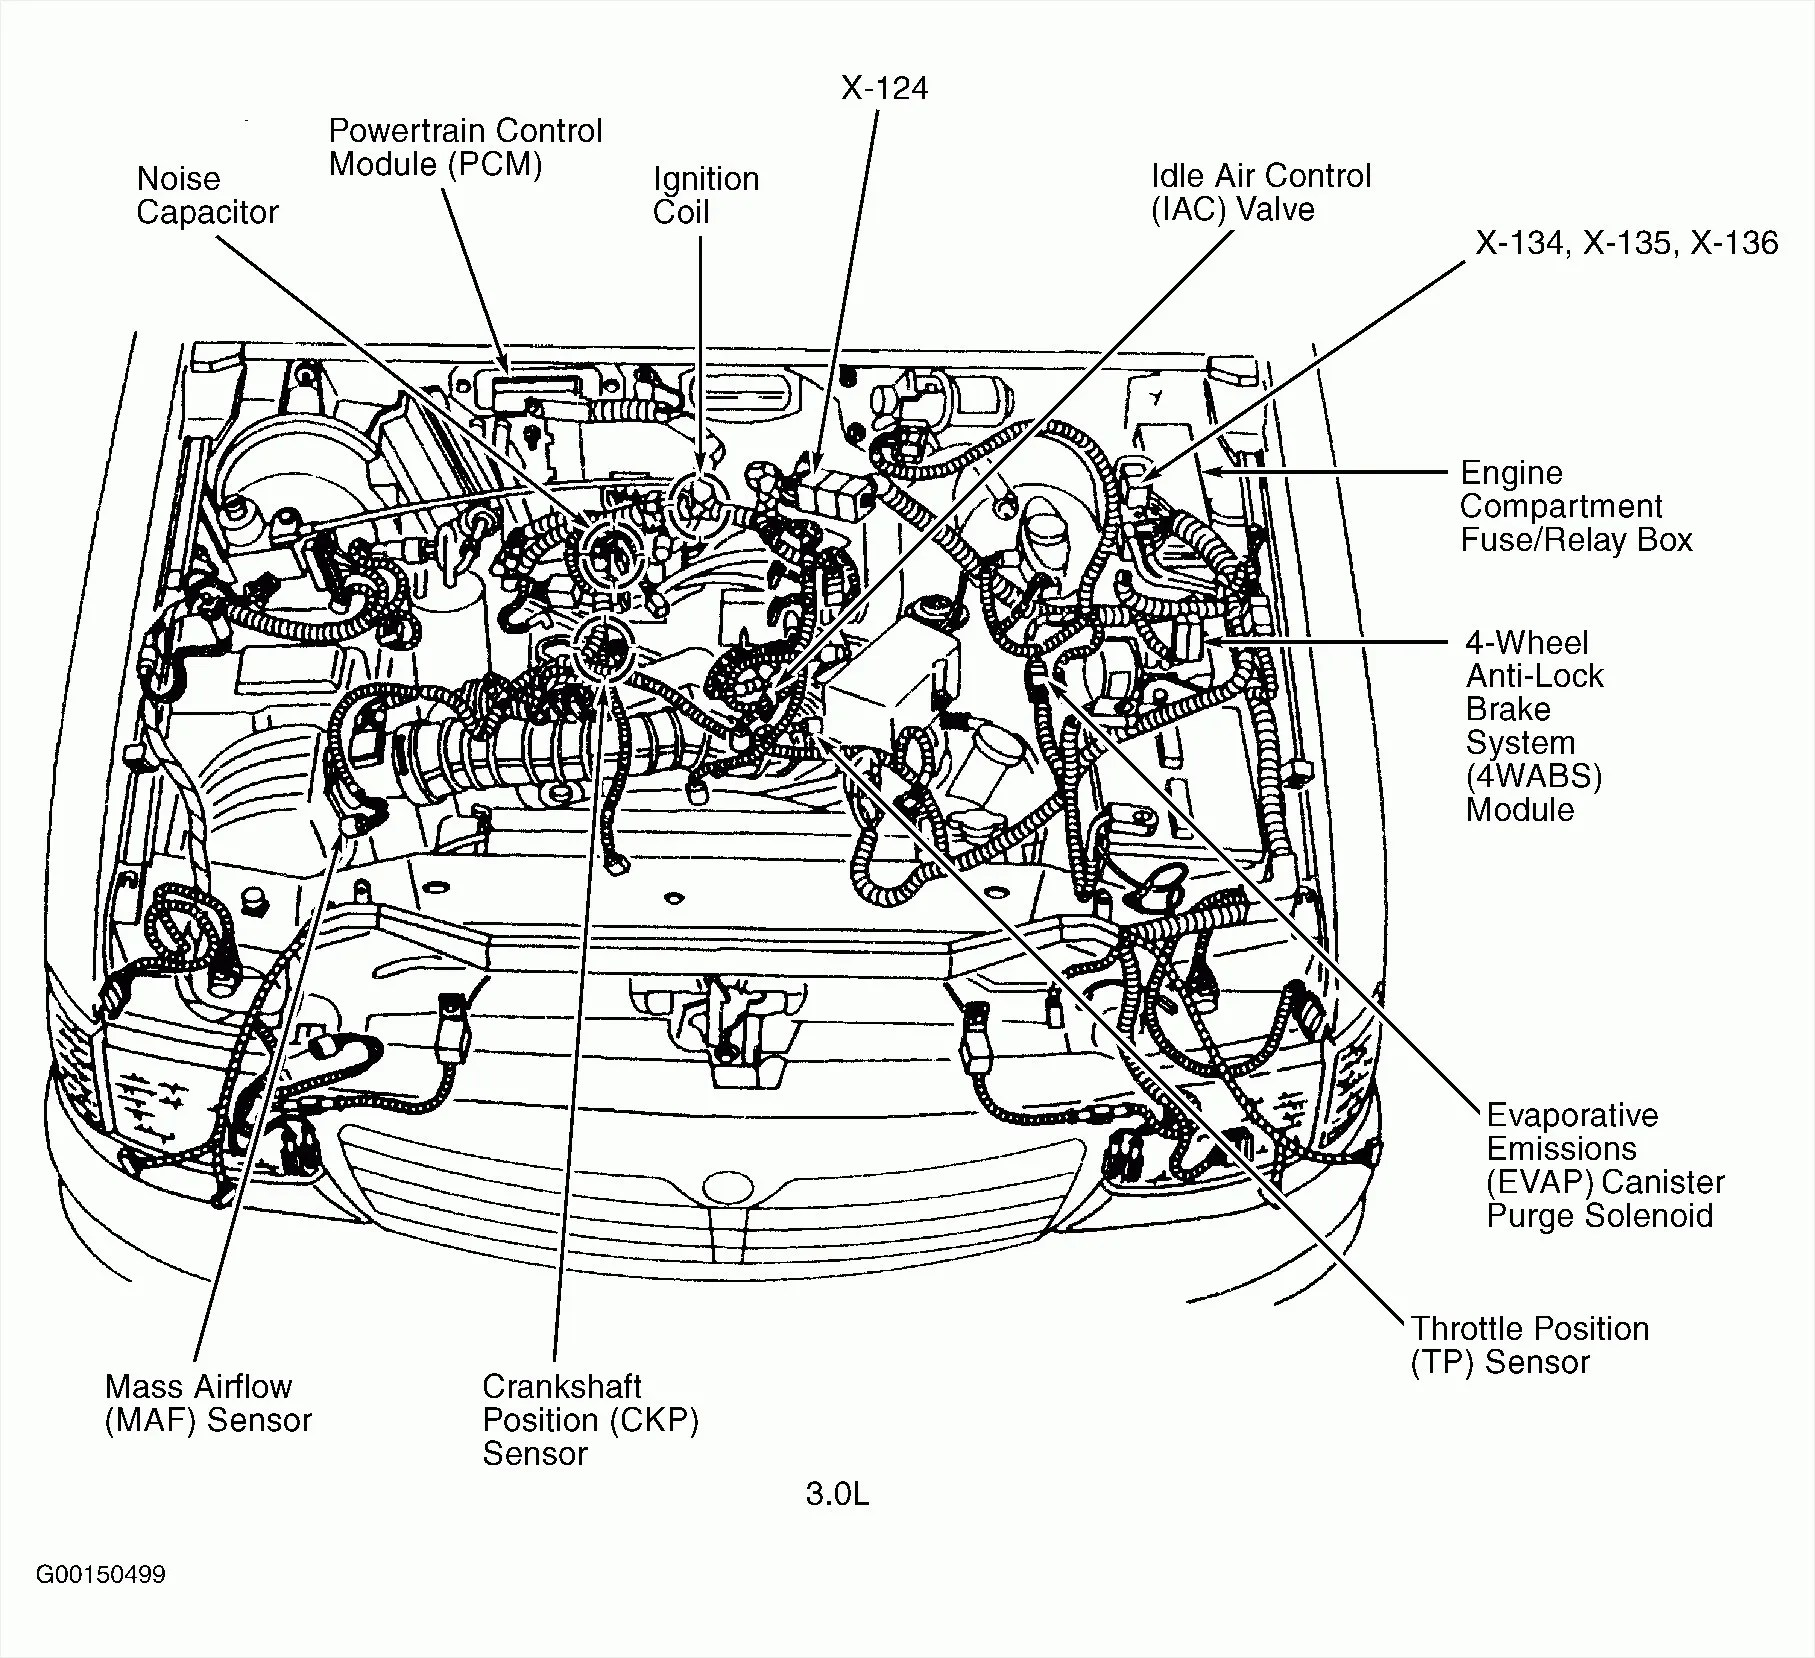 hight resolution of chrysler engine diagram for 2015 wiring diagram sheet chrysler engine diagram for 2015